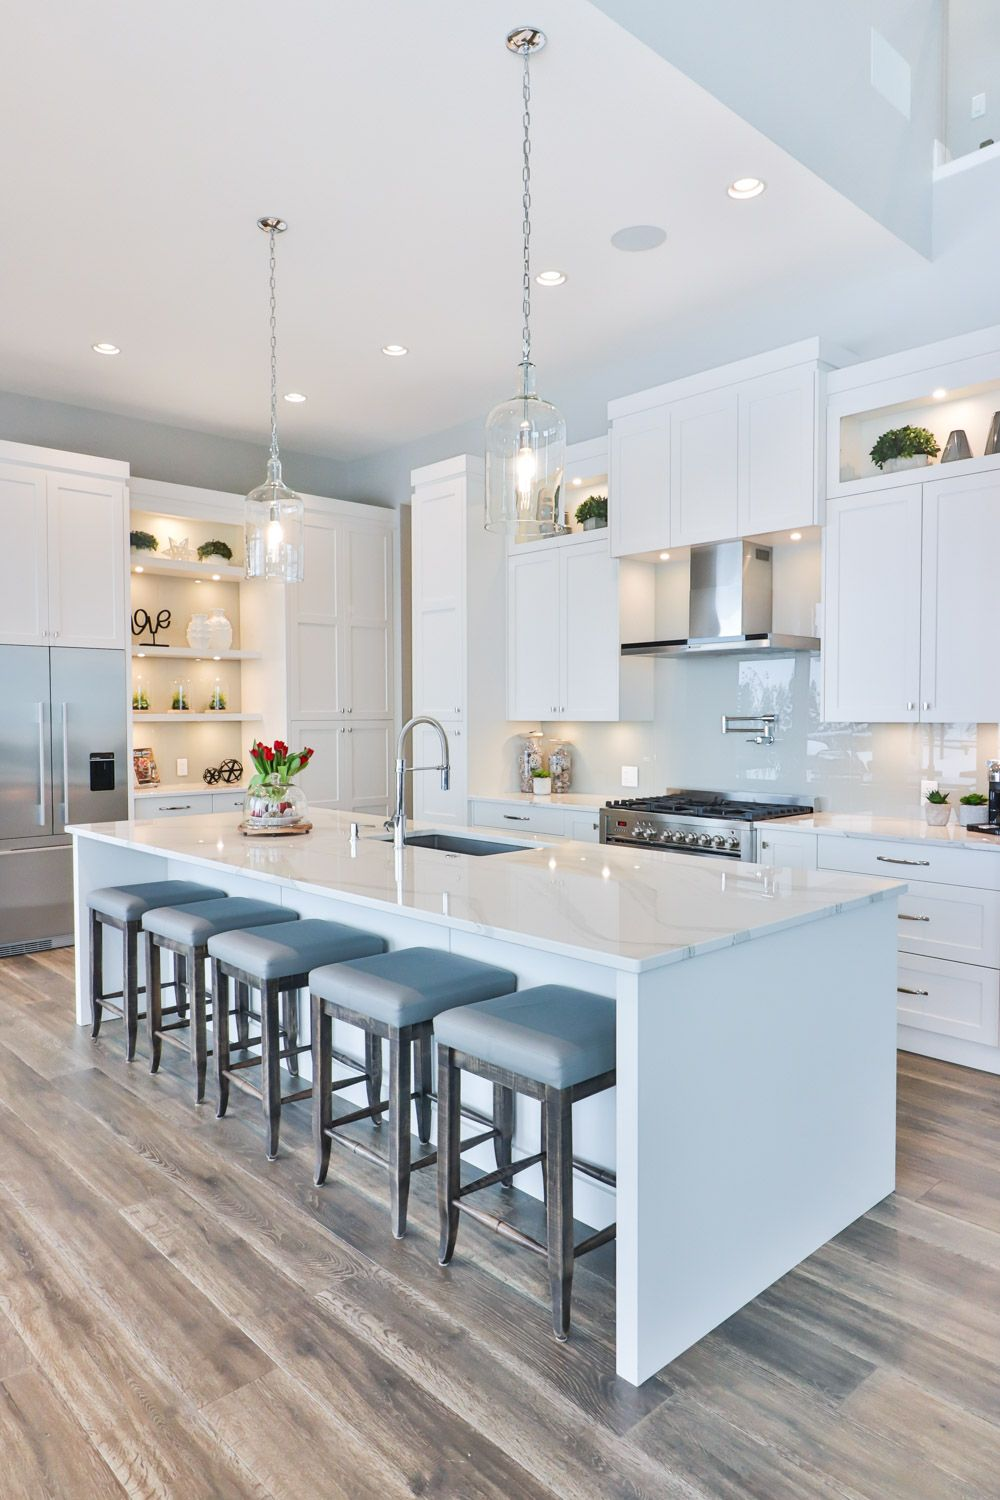 White Transitional Kitchen With Shaker Cabinets White Quartz Countertops Stainless Applianc White Shaker Kitchen Cabinets White Shaker Kitchen Kitchen Design